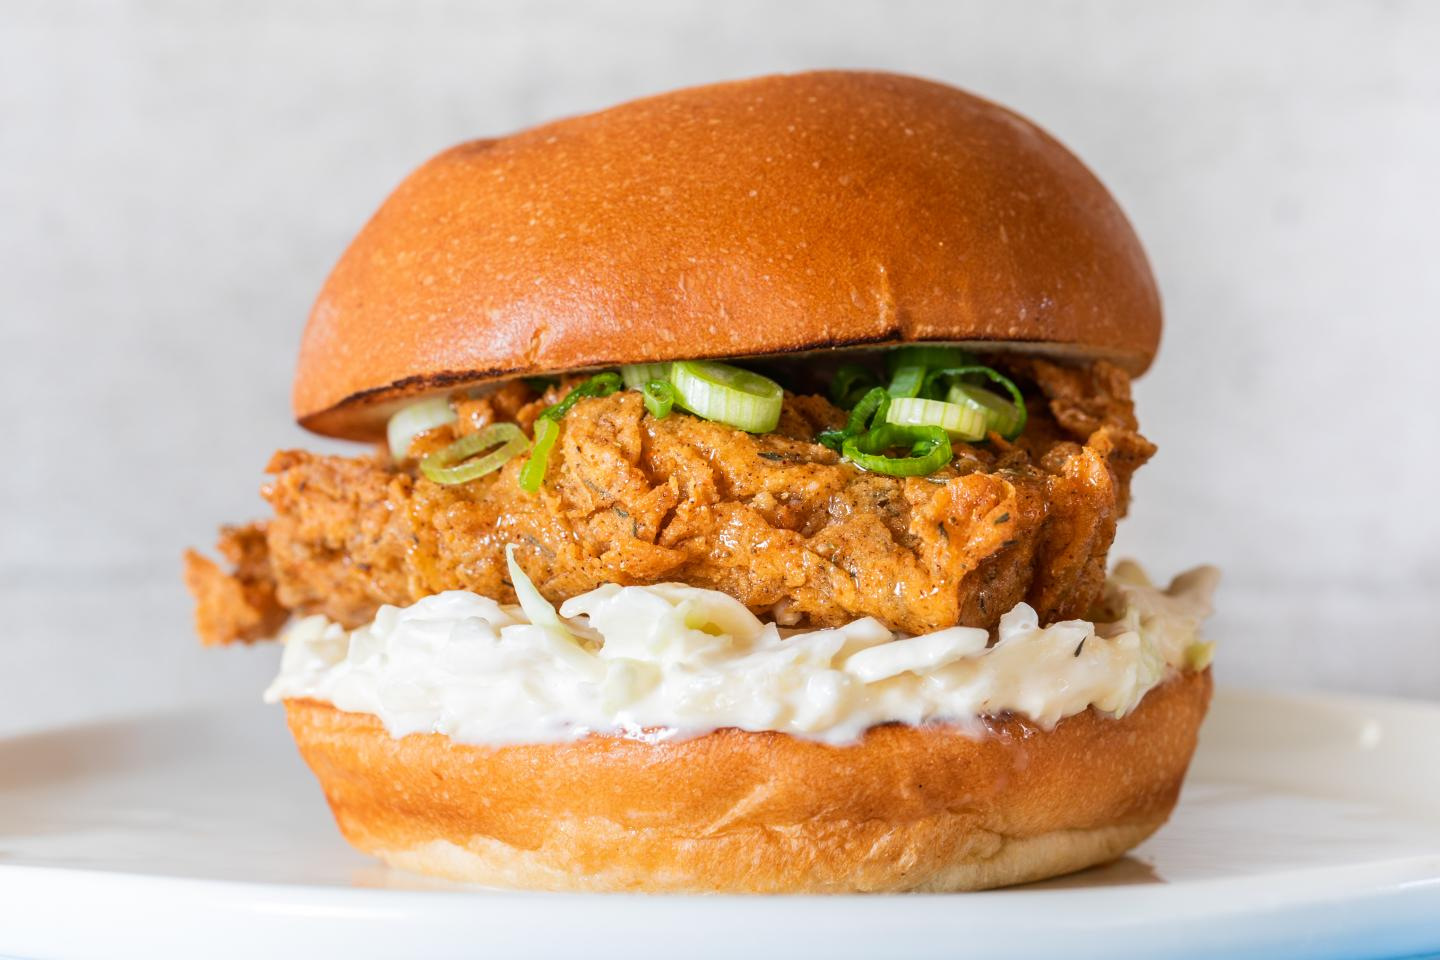 XXX_Ghost_Chili_Fried_Chicken_Sandwich_Stripburger